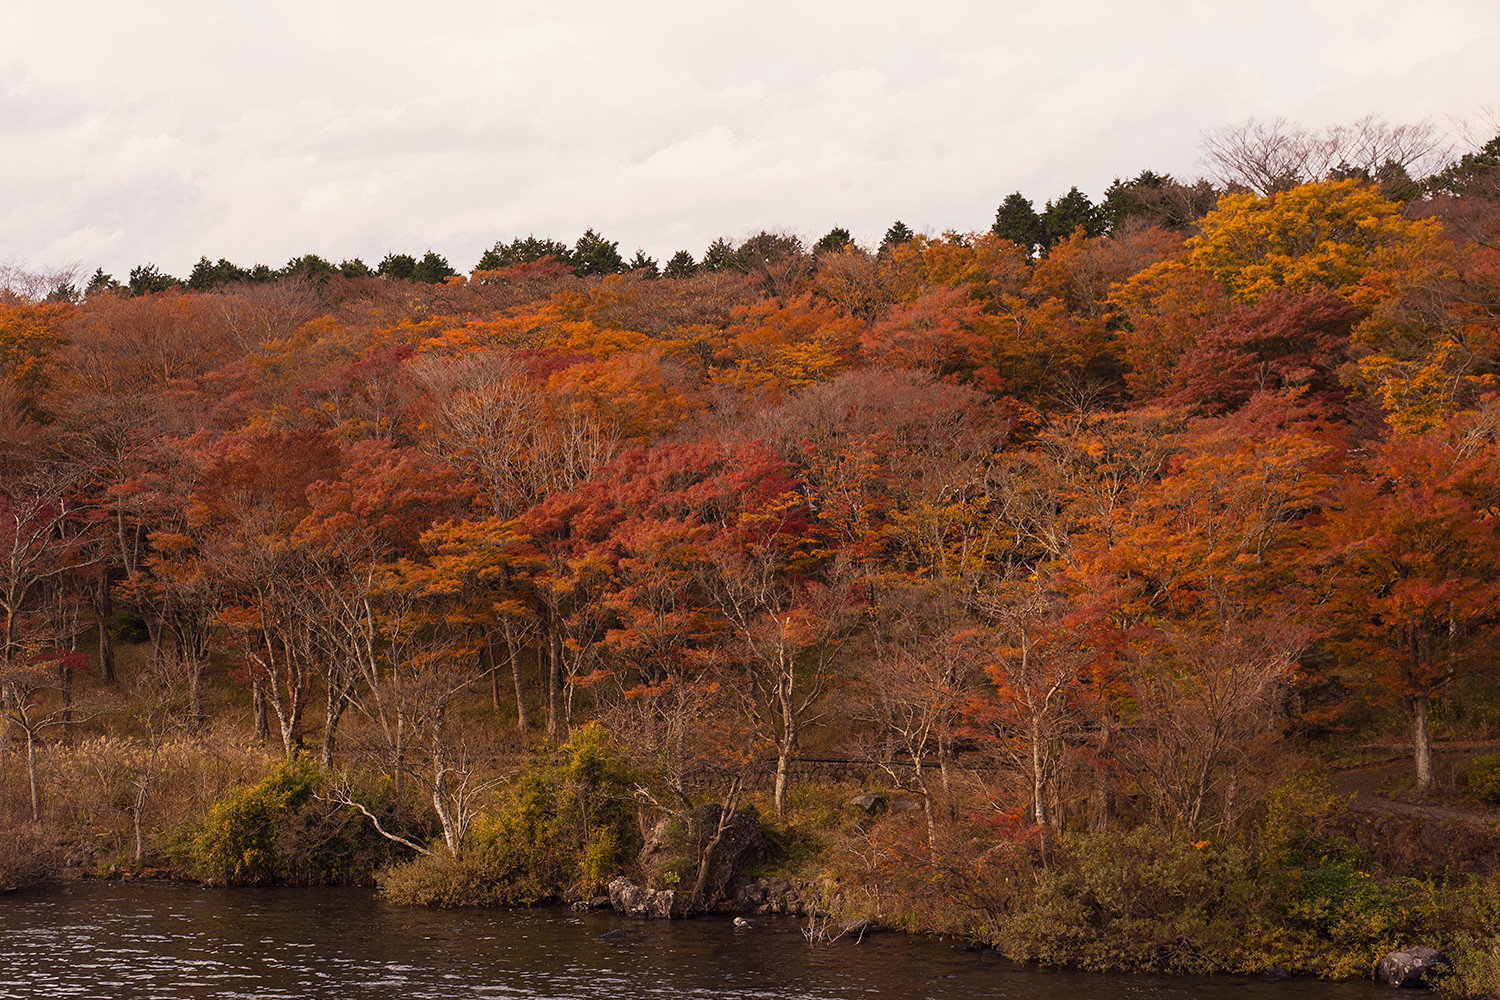 18hakone-japan-lakeashi-fallfoliage-autumn-travel